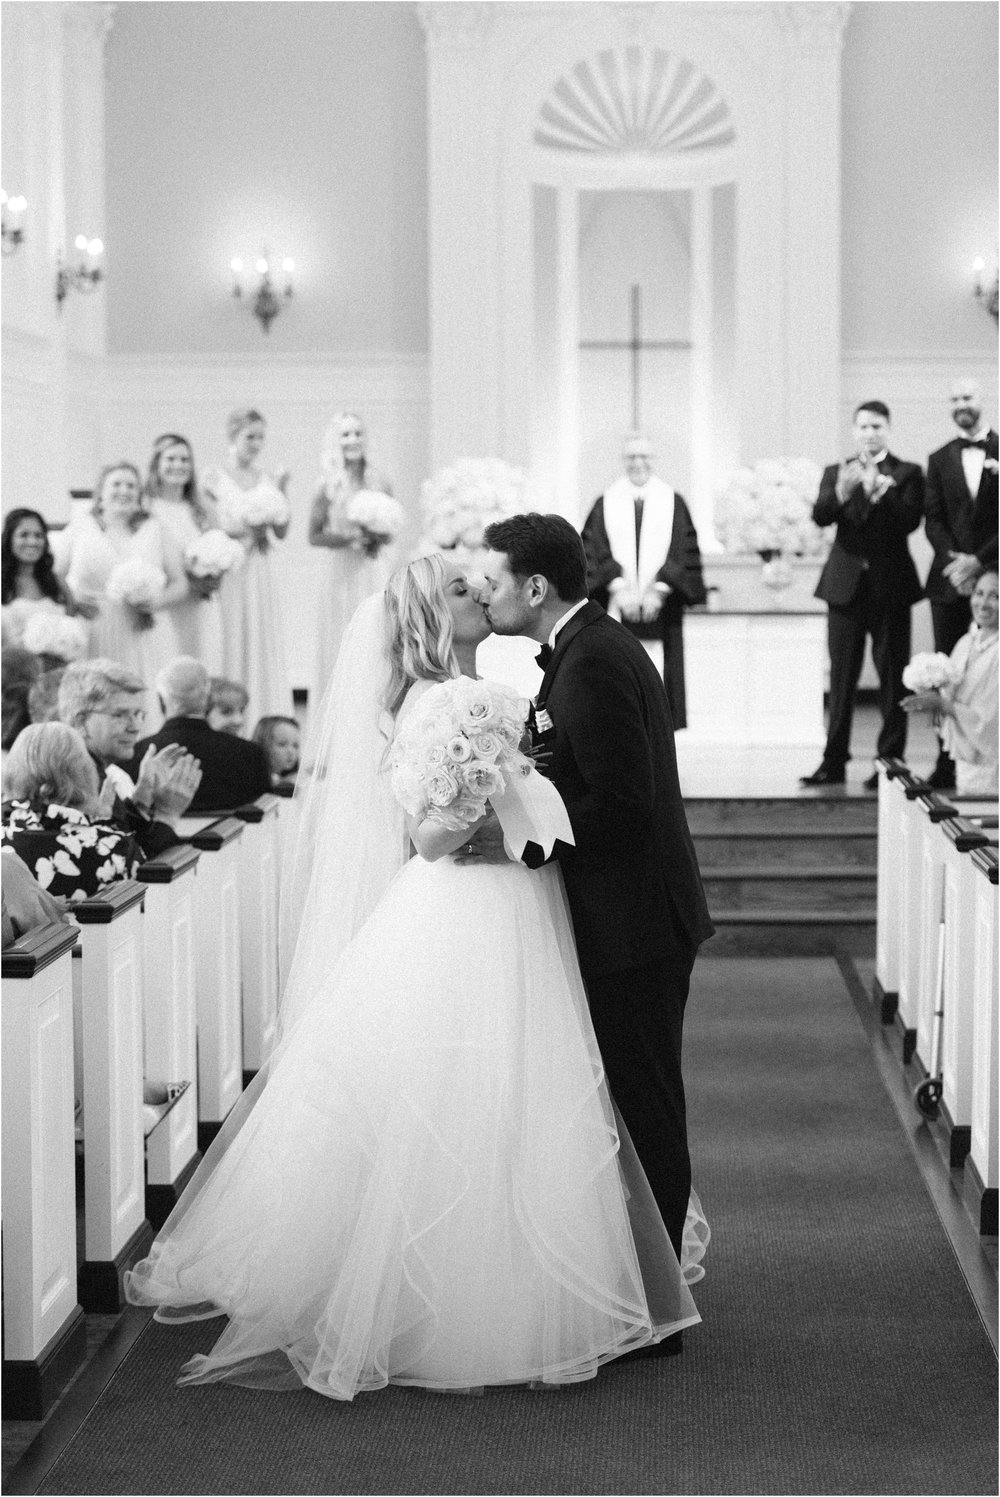 dallasweddingphotographer_fortworthweddingphotographer_texasweddingphotographer_mattandjulieweddings_0020.jpg